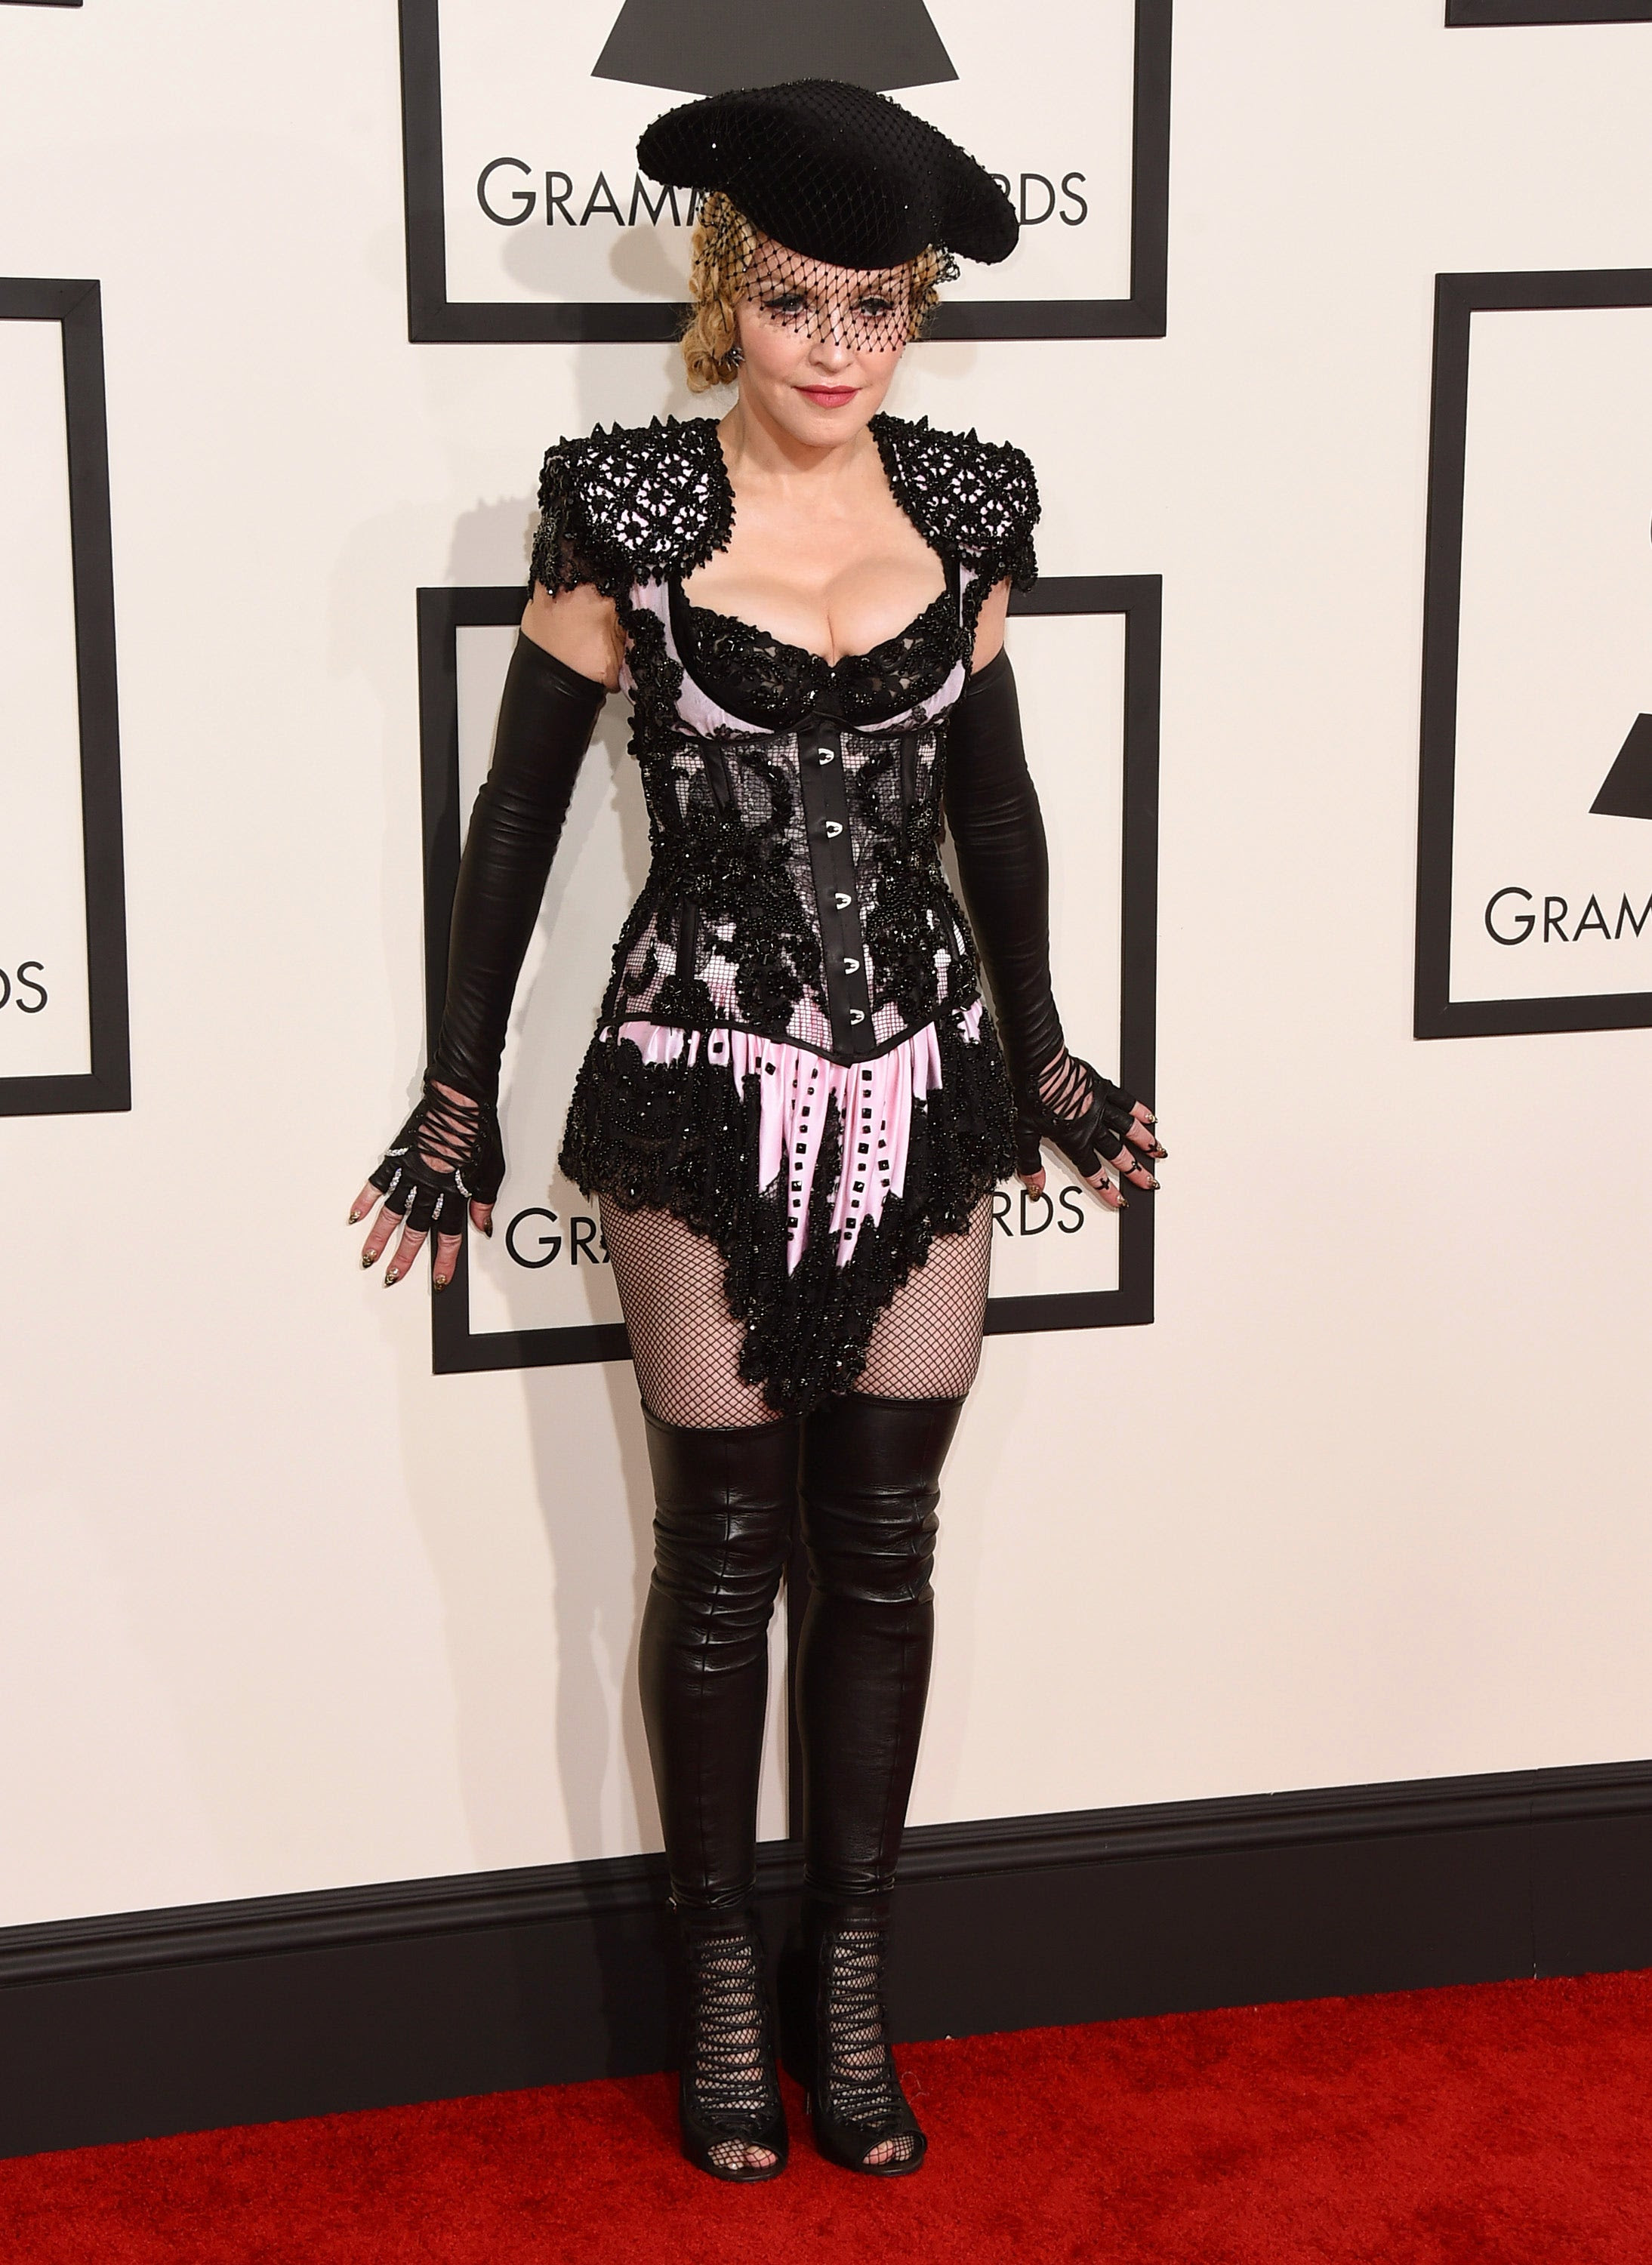 madonna wears risque outfit at grammys shows off her